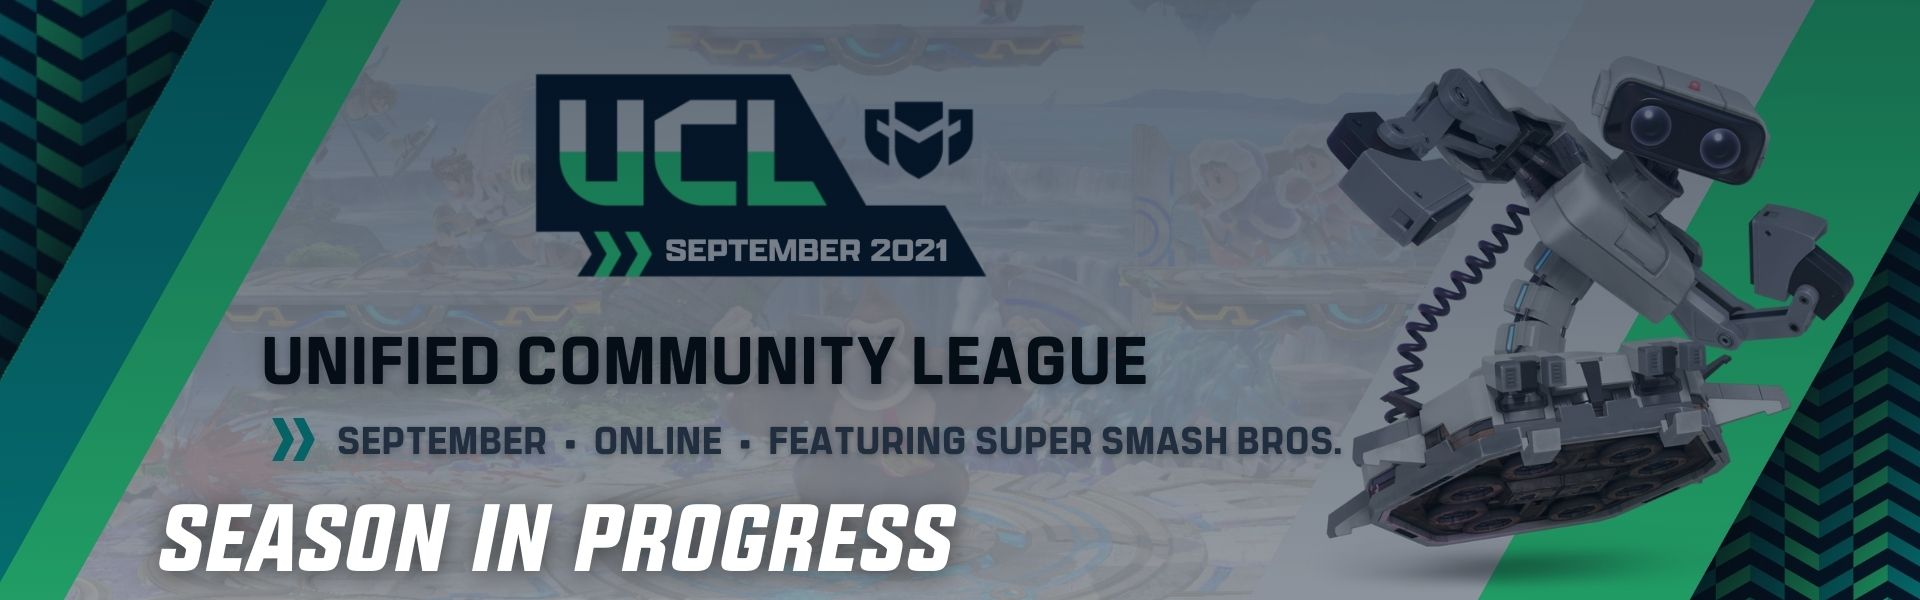 September UCL: Featuring Super Smash Bros. Ultimate